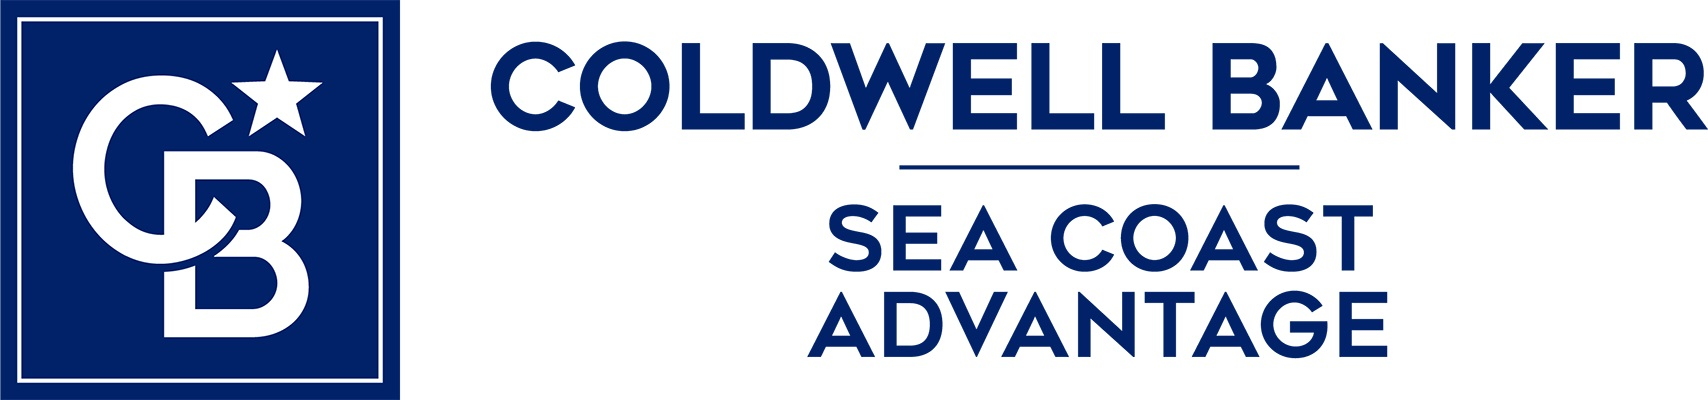 Catherine Lea - Coldwell Banker Sea Coast Advantage Realty